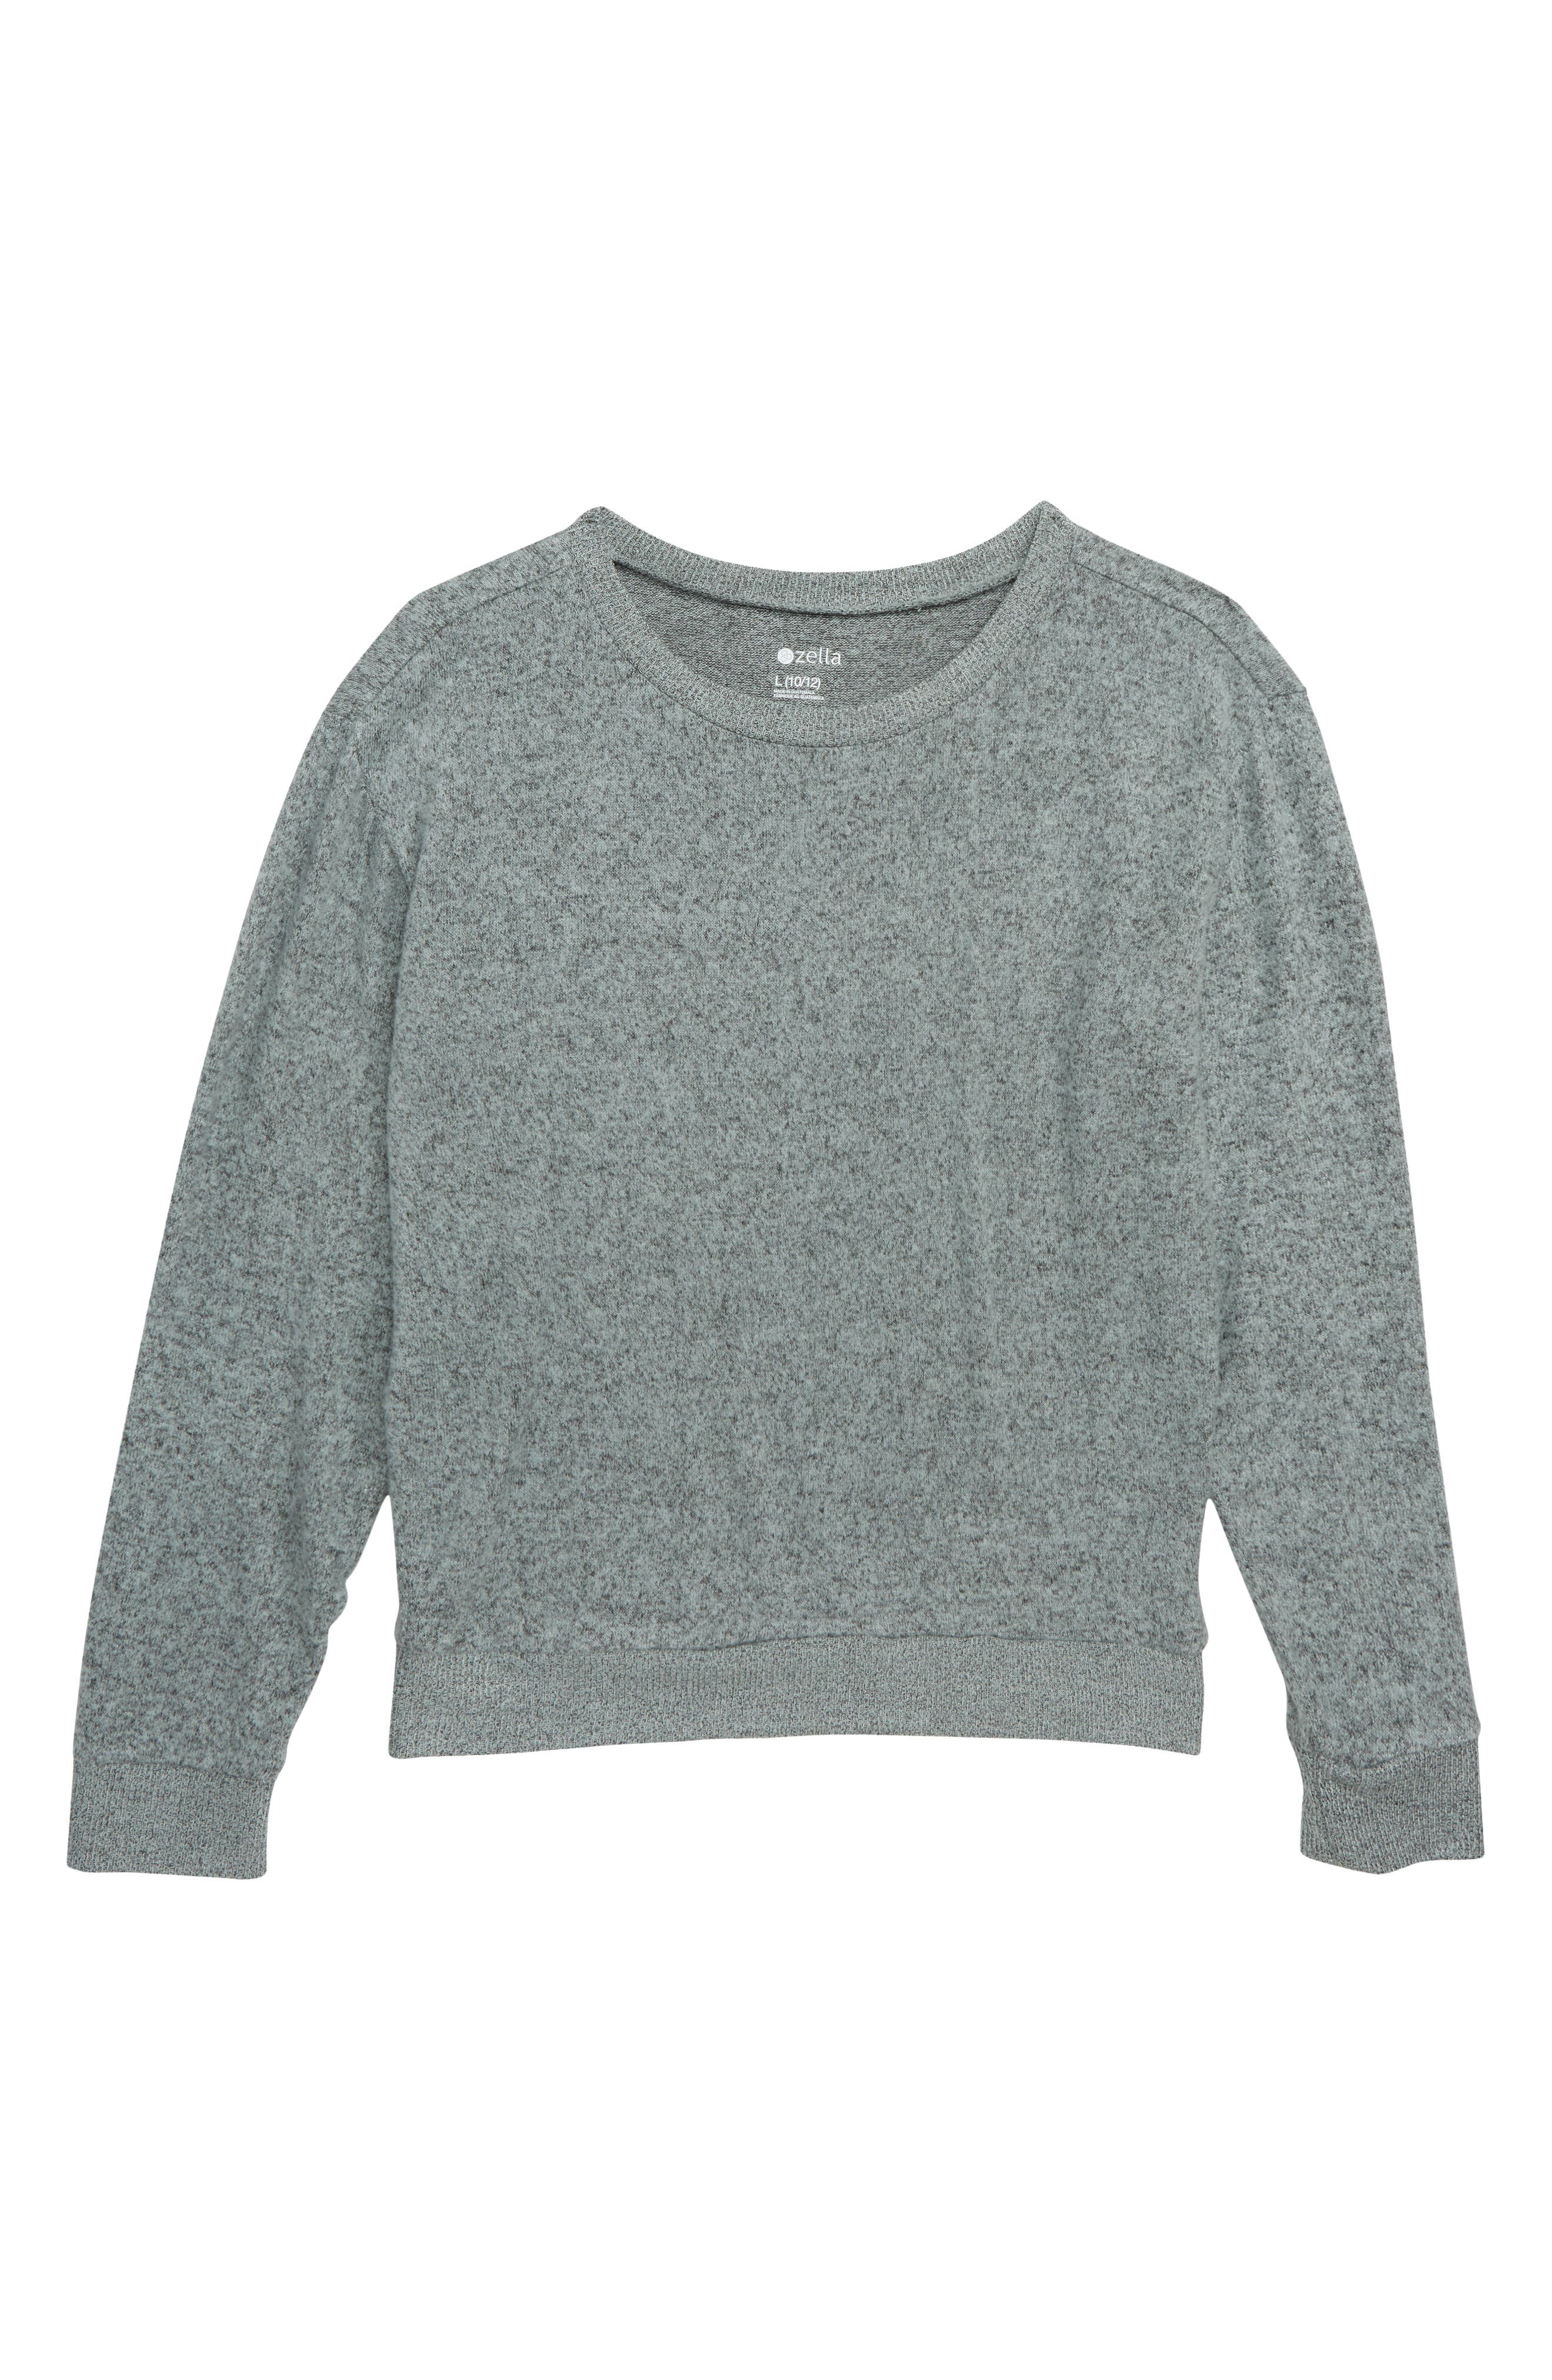 Supersoft Sweater,                         Main,                         color, BLACK MINT HEATHER